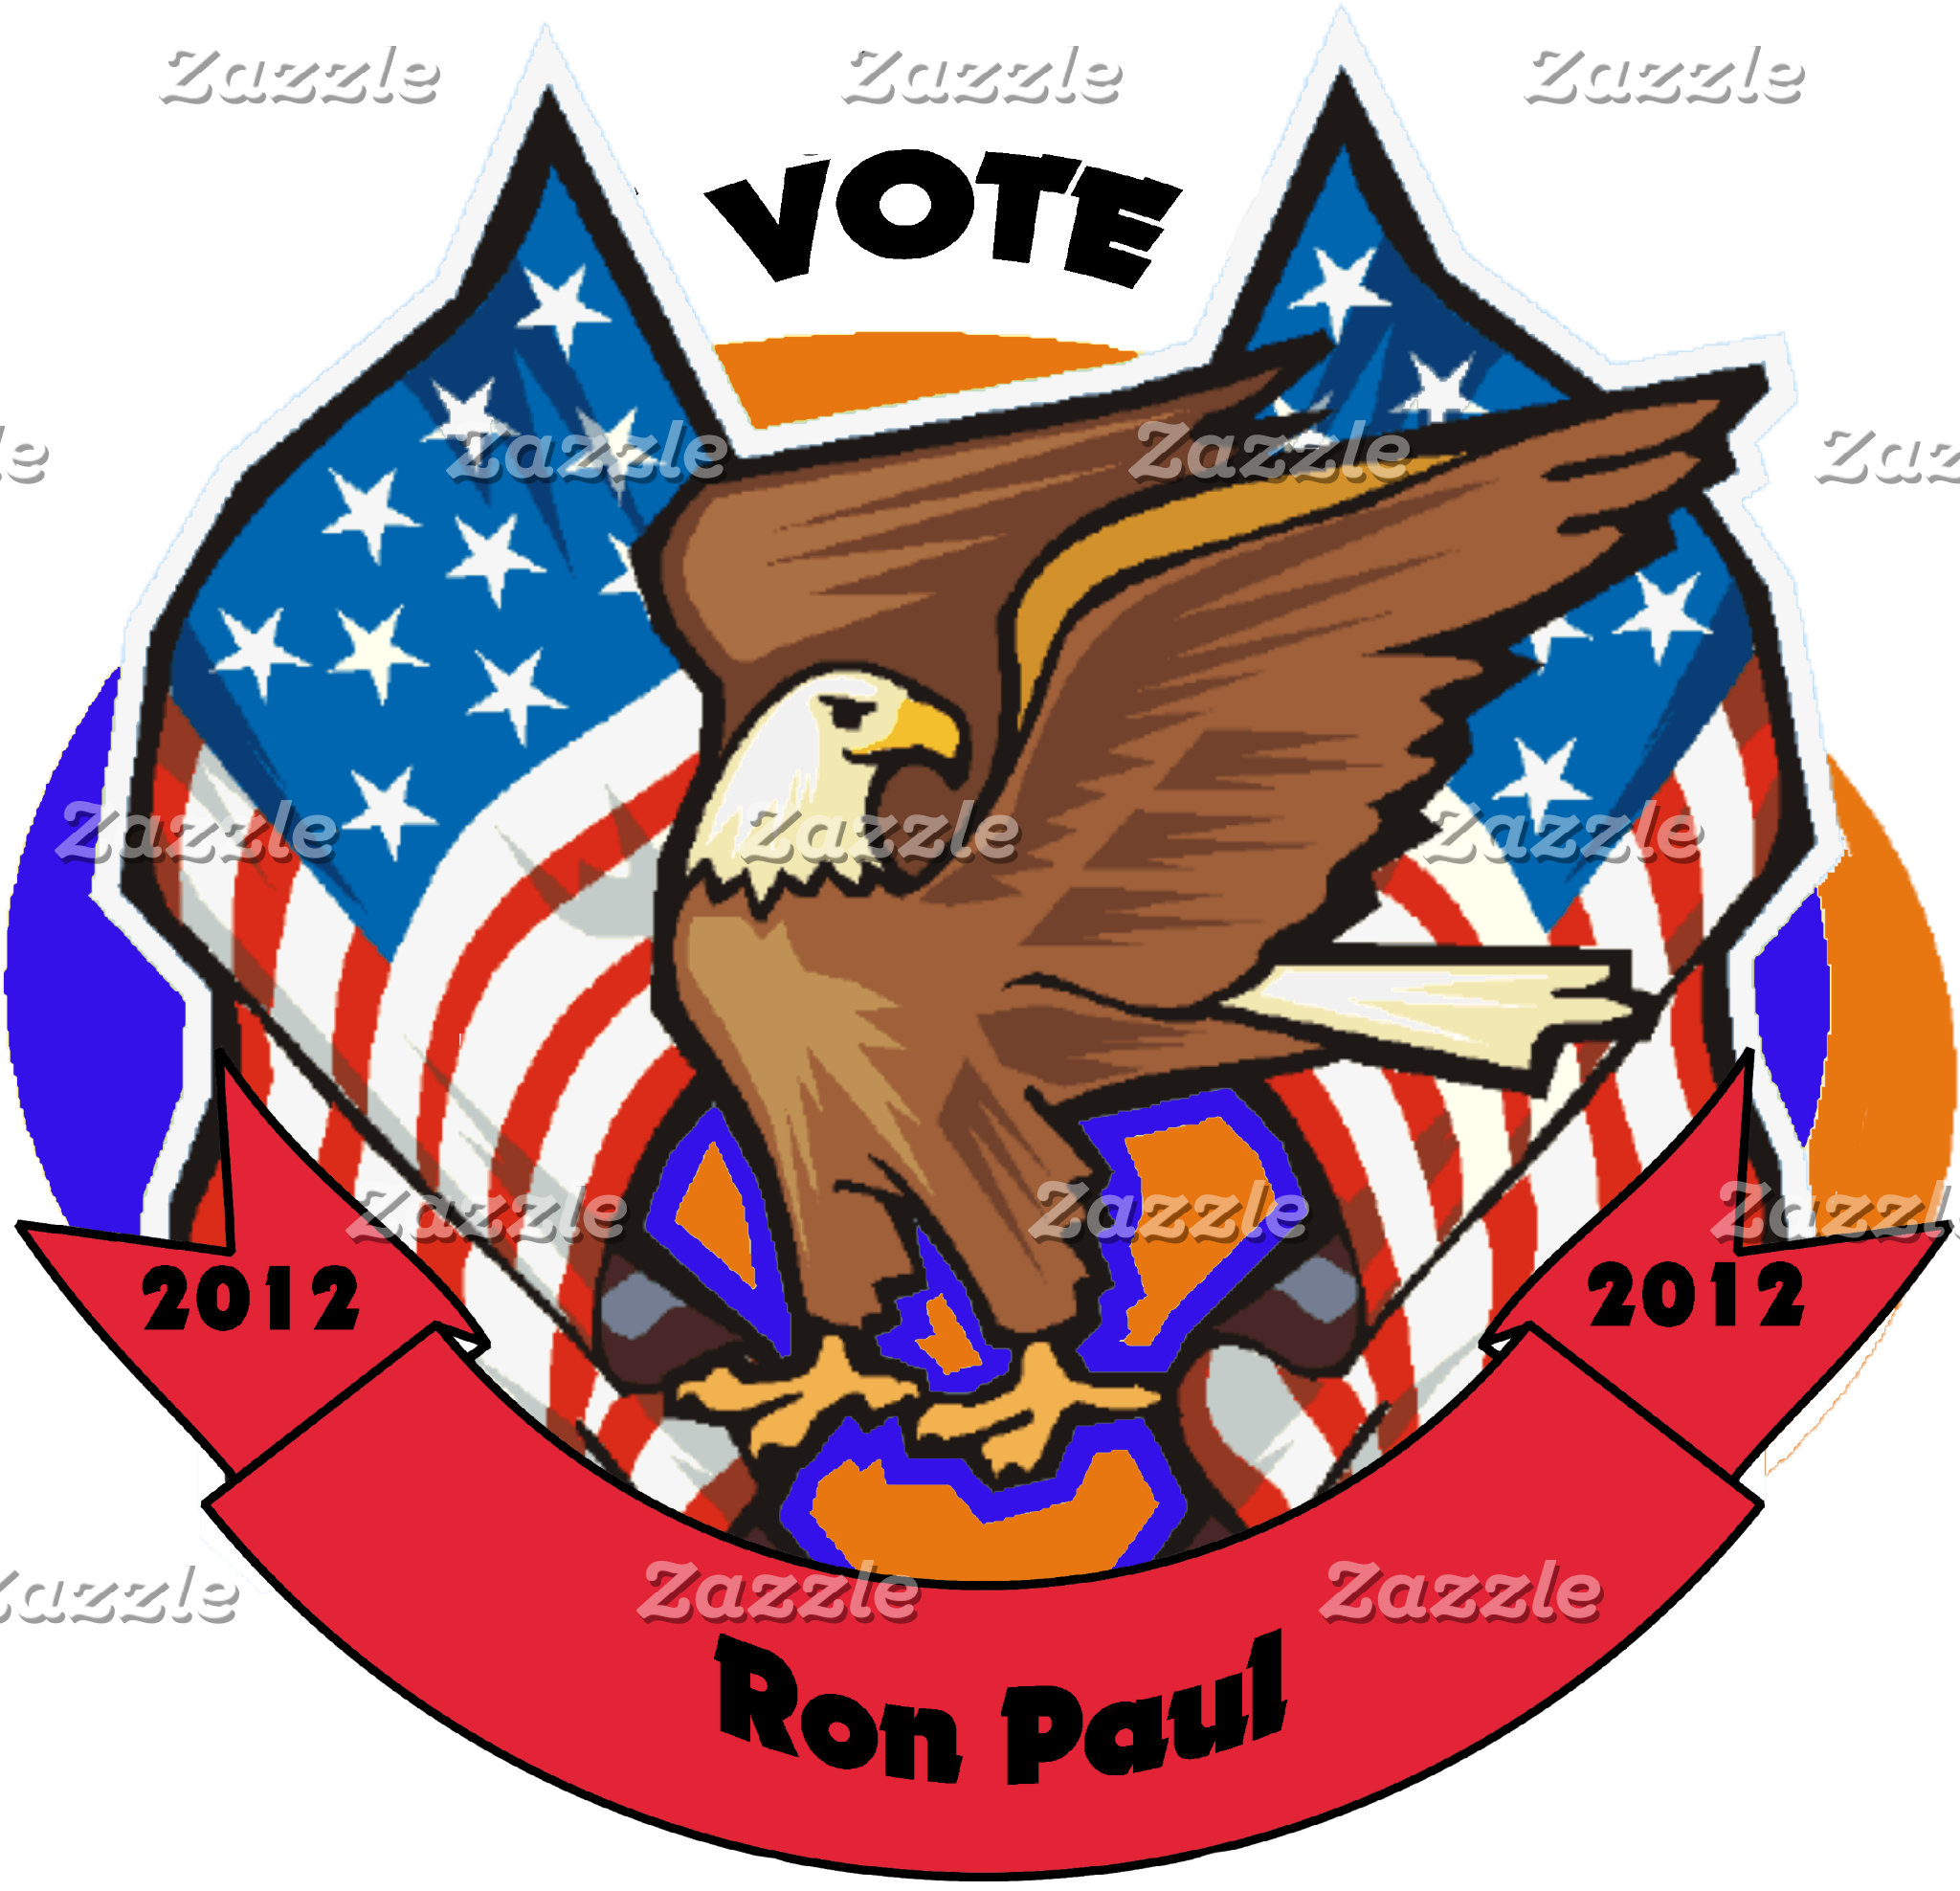 Vote for Ron Paul